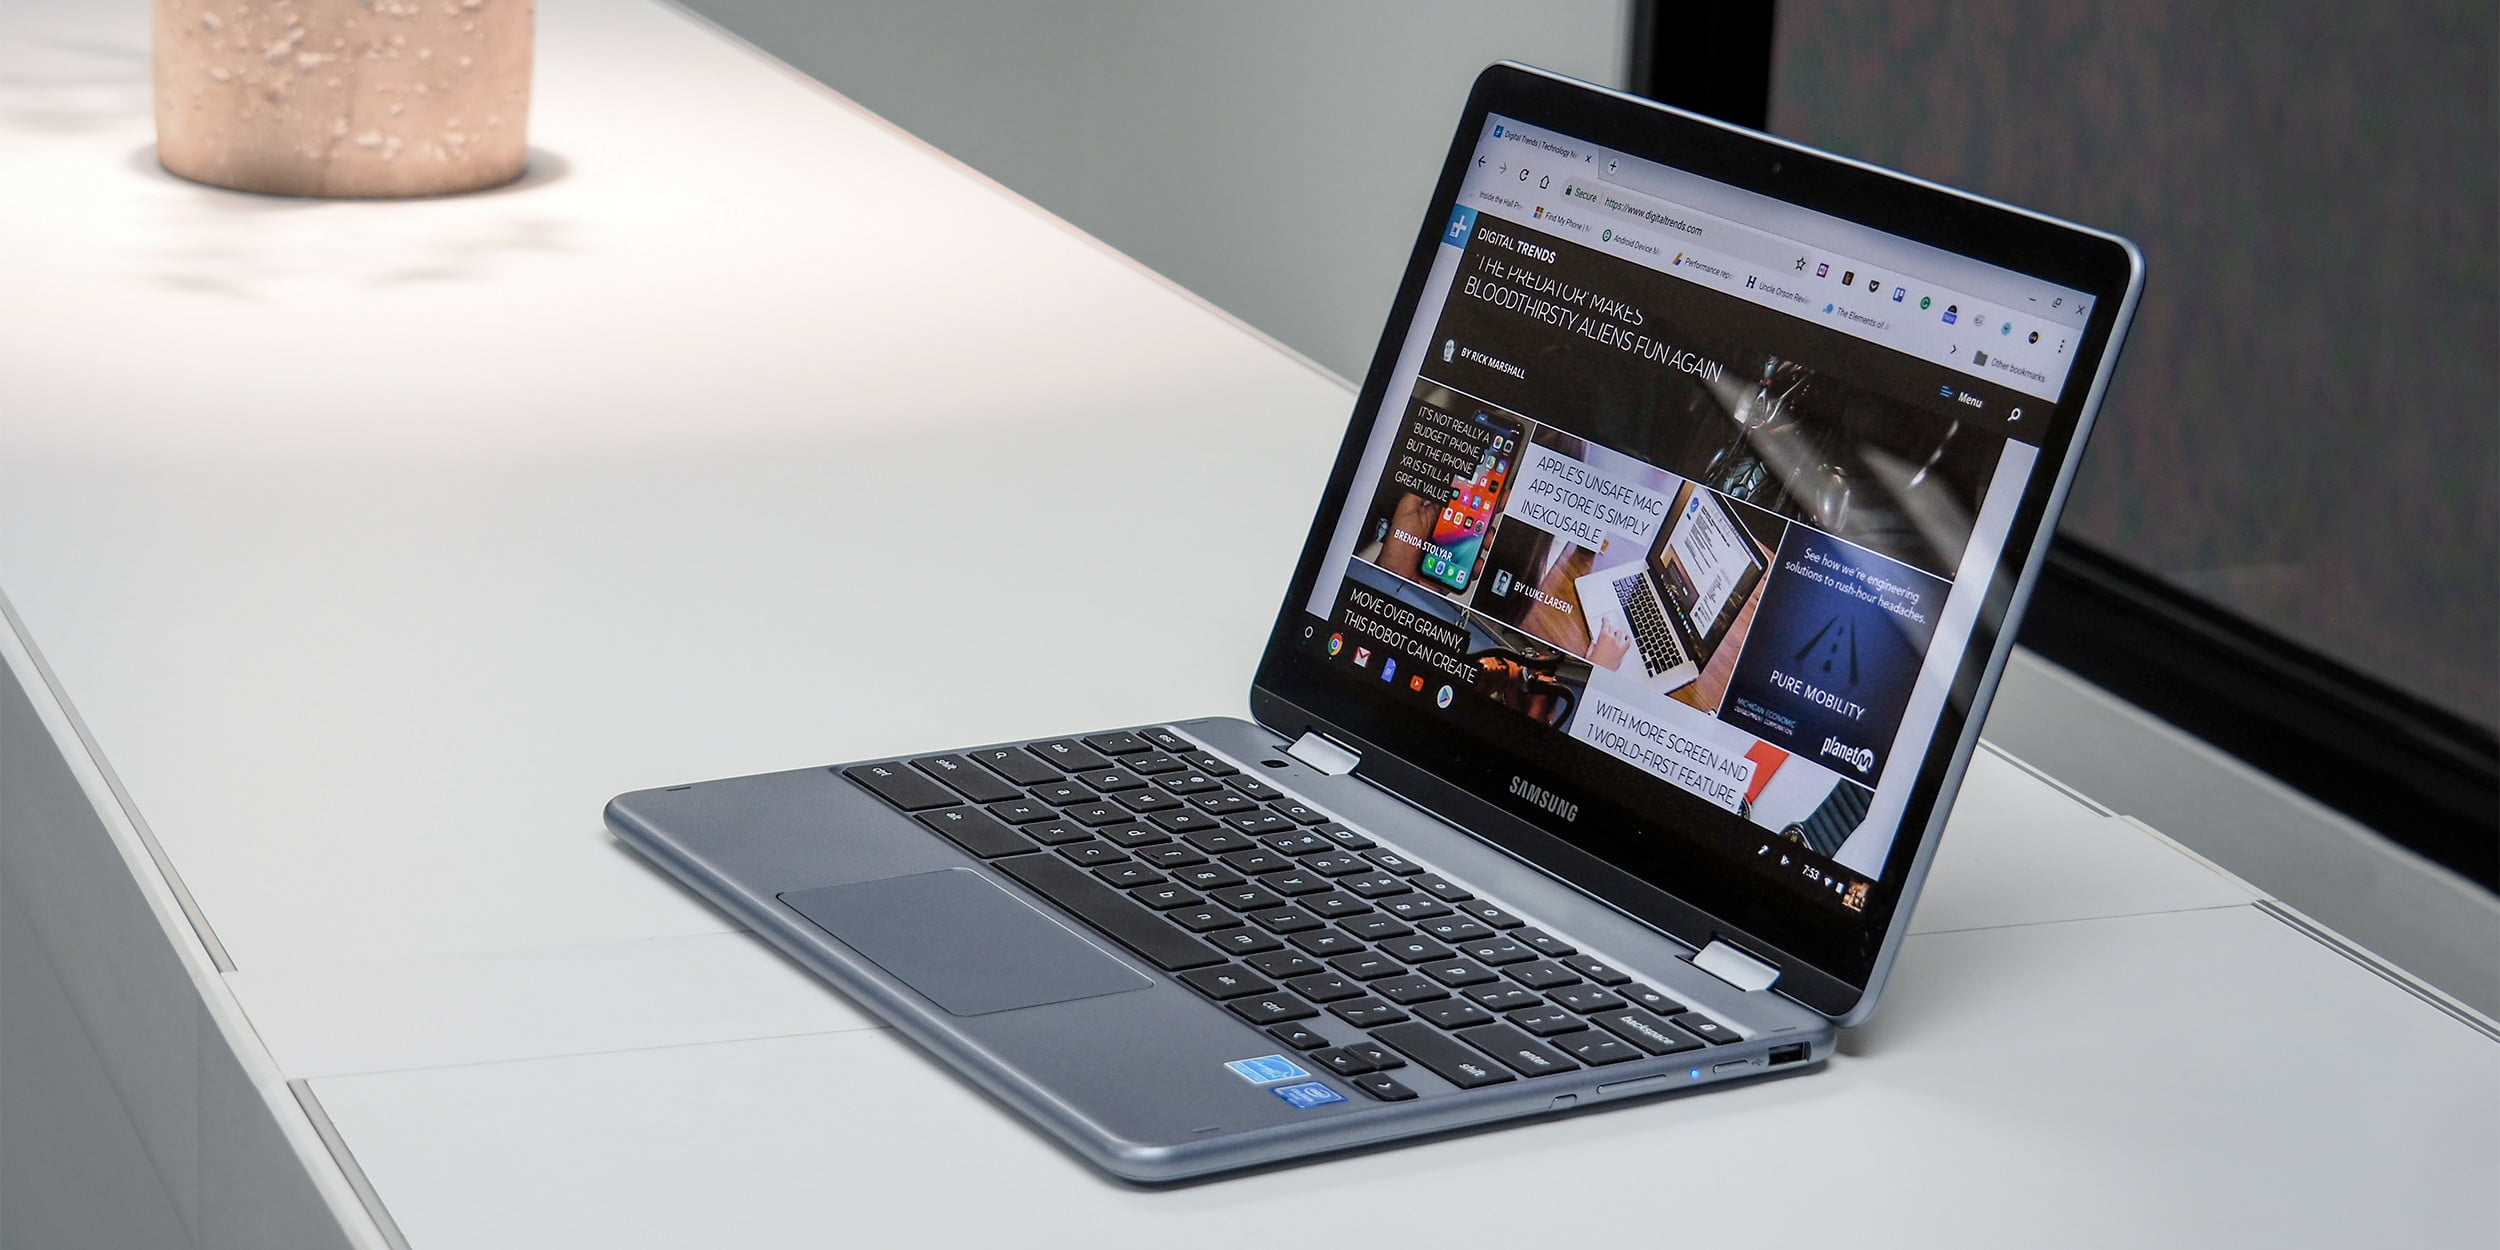 Samsung Chromebook Plus V2 Review | Digital Trends